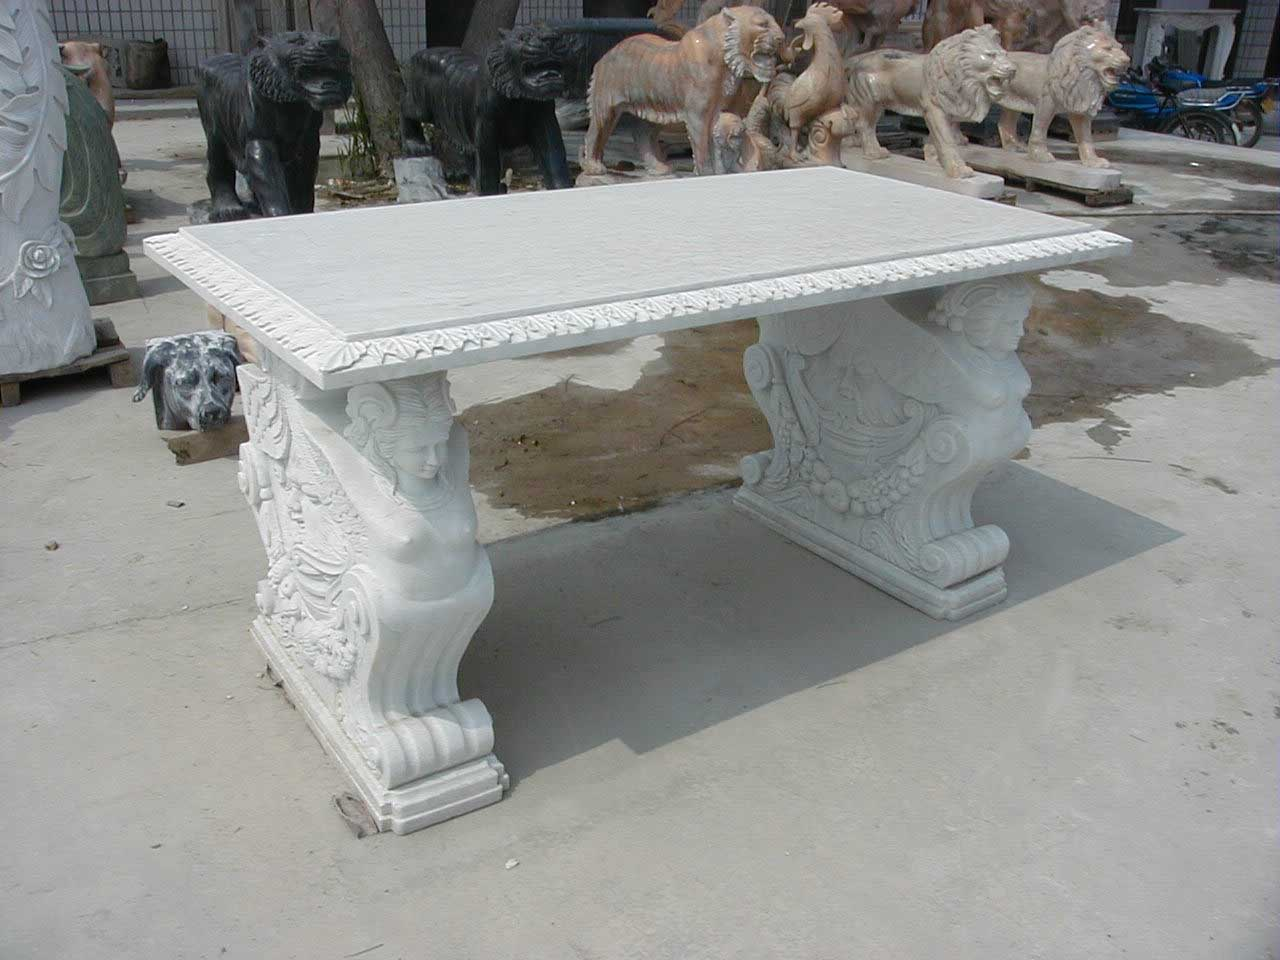 Stone Patio Tables Ideas  Homesfeed. Patio Armor Oval Table Cover. Outdoor Patio Sets For Small Spaces. Ideas For Patio Storage. Patio And Furniture Tampa. Circular Outdoor Patio Sets. Patio Furniture Cover Canada. Patio Furniture Stores In Ft Myers. Patio Living Room Ideas